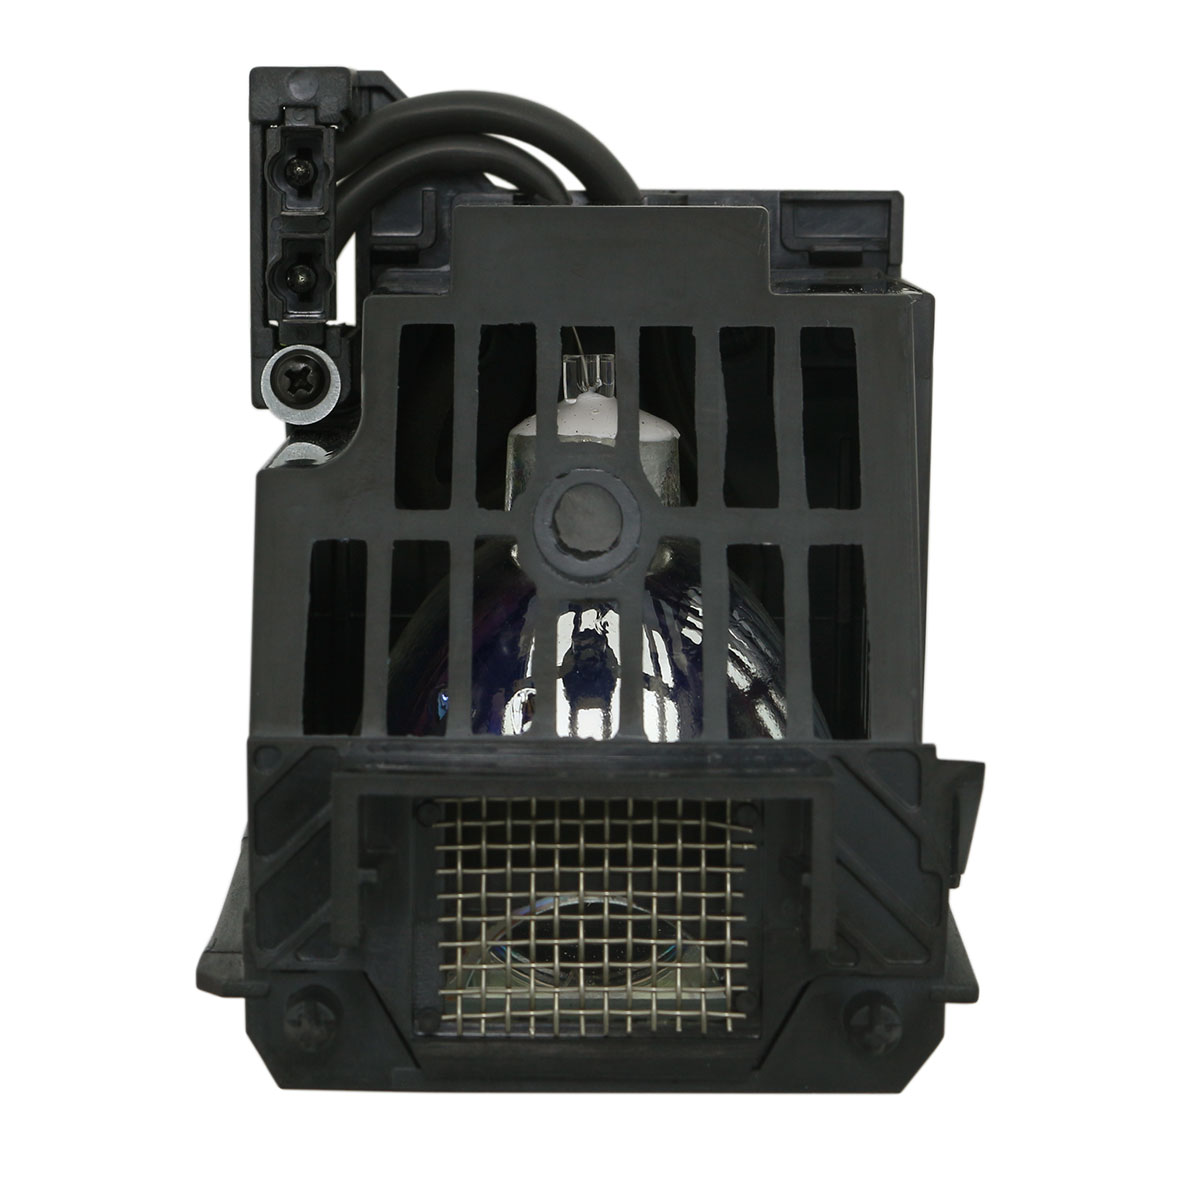 Original Philips TV Lamp Replacement for Mitsubishi WD-65736 (Bulb Only) - image 4 of 5